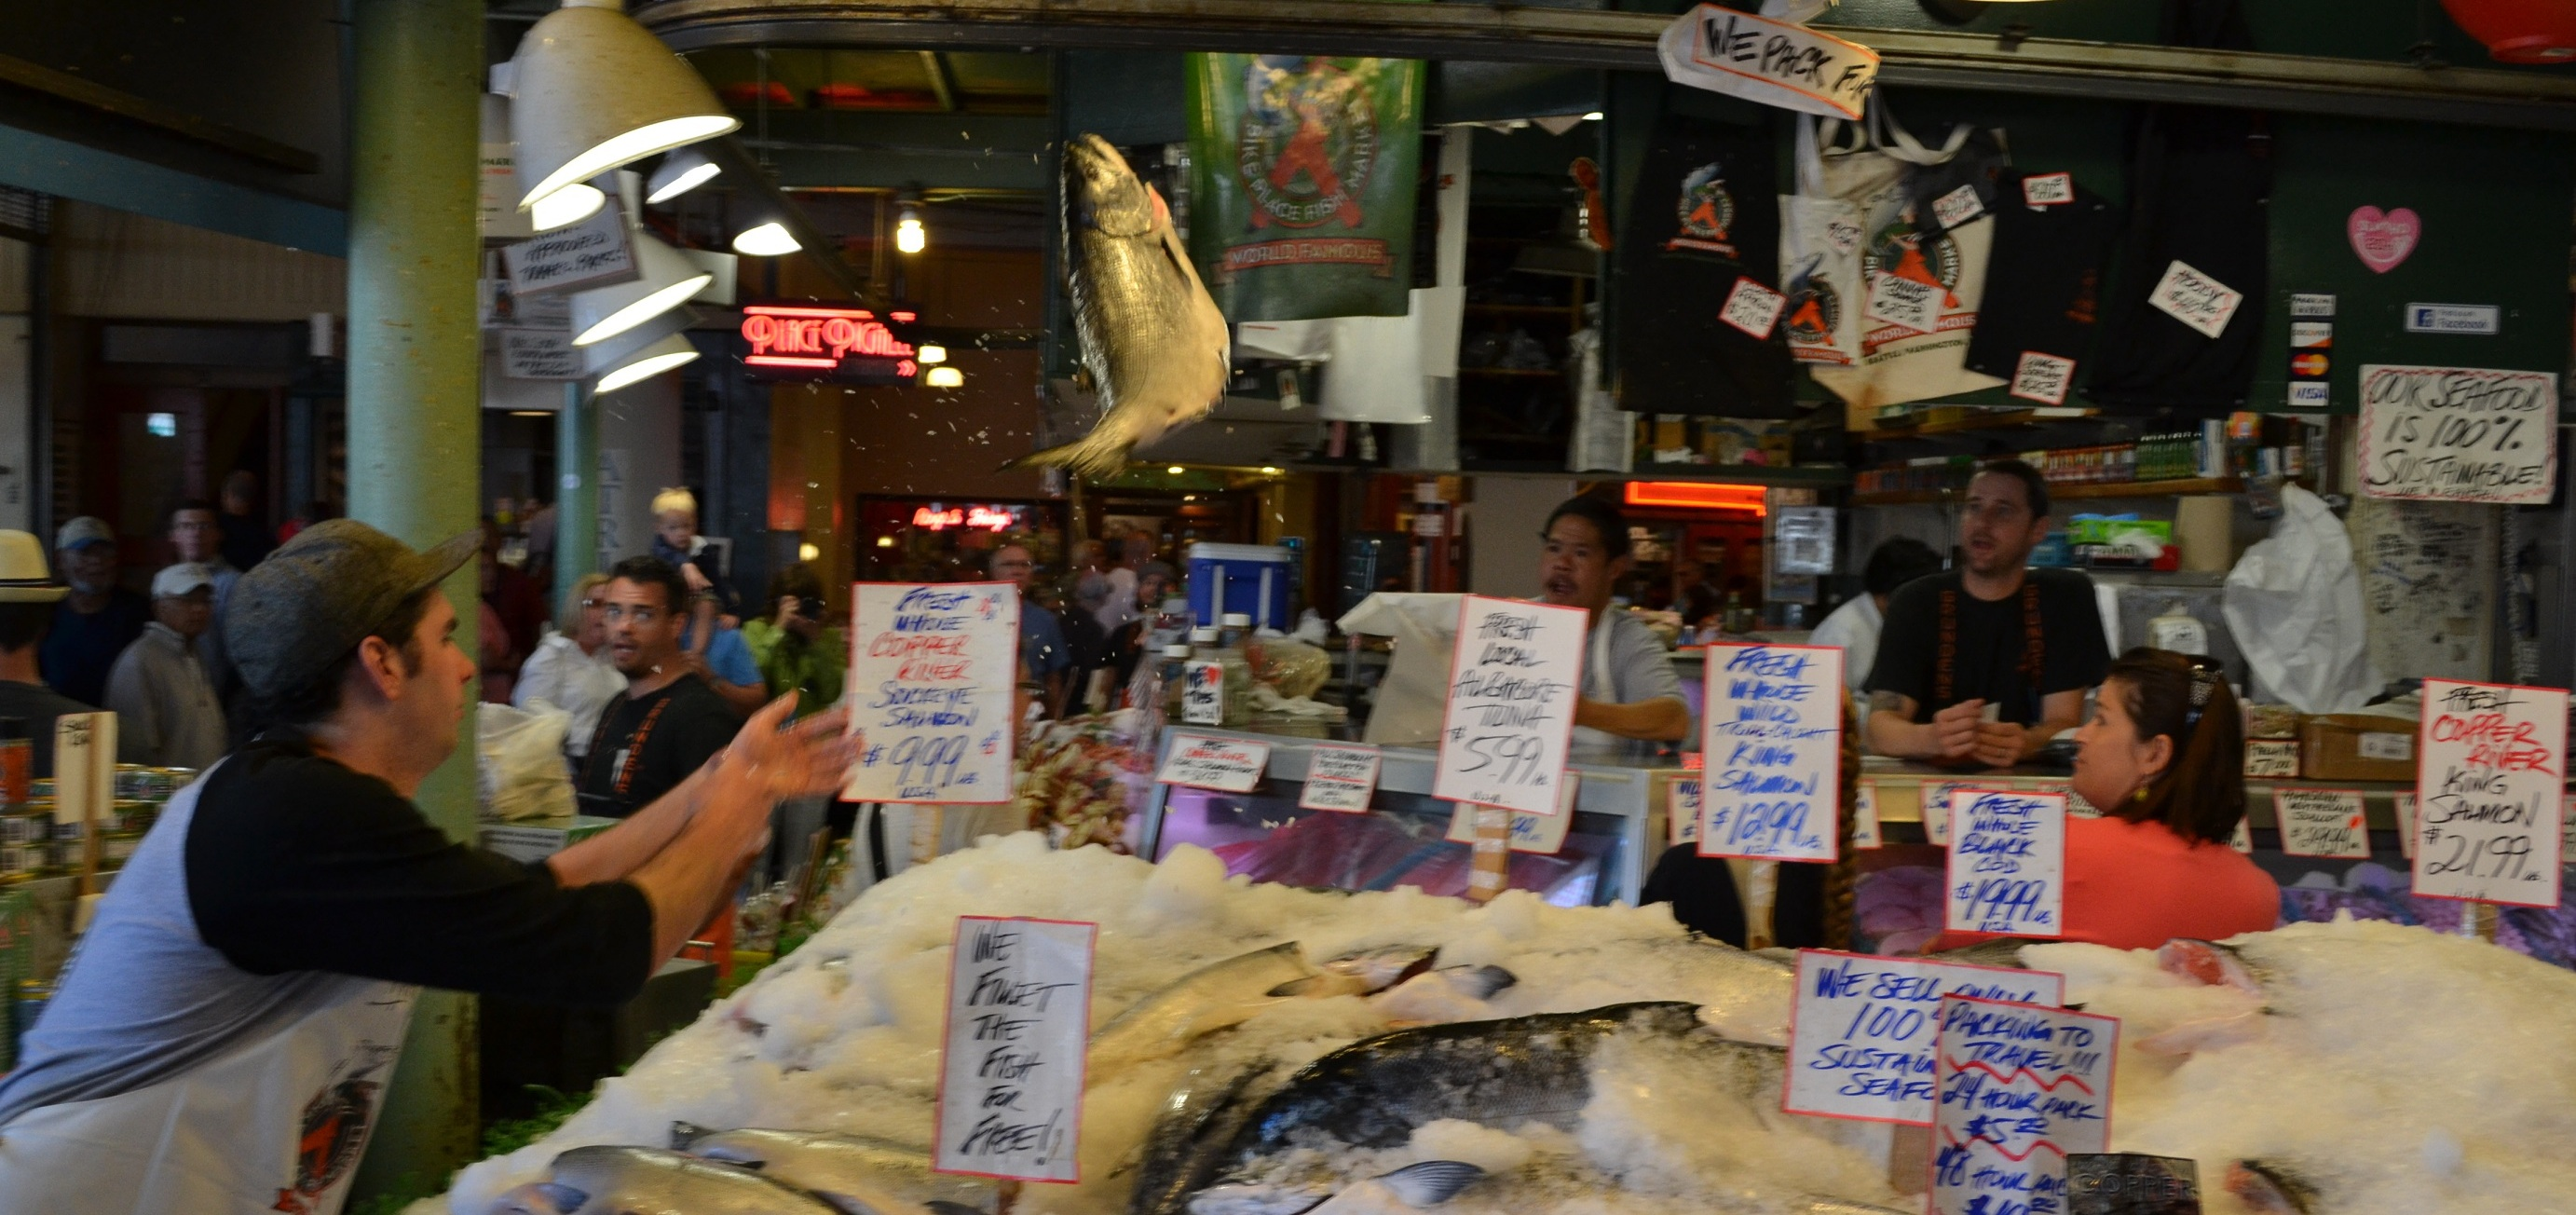 Pike place market fish images for Fish market seattle